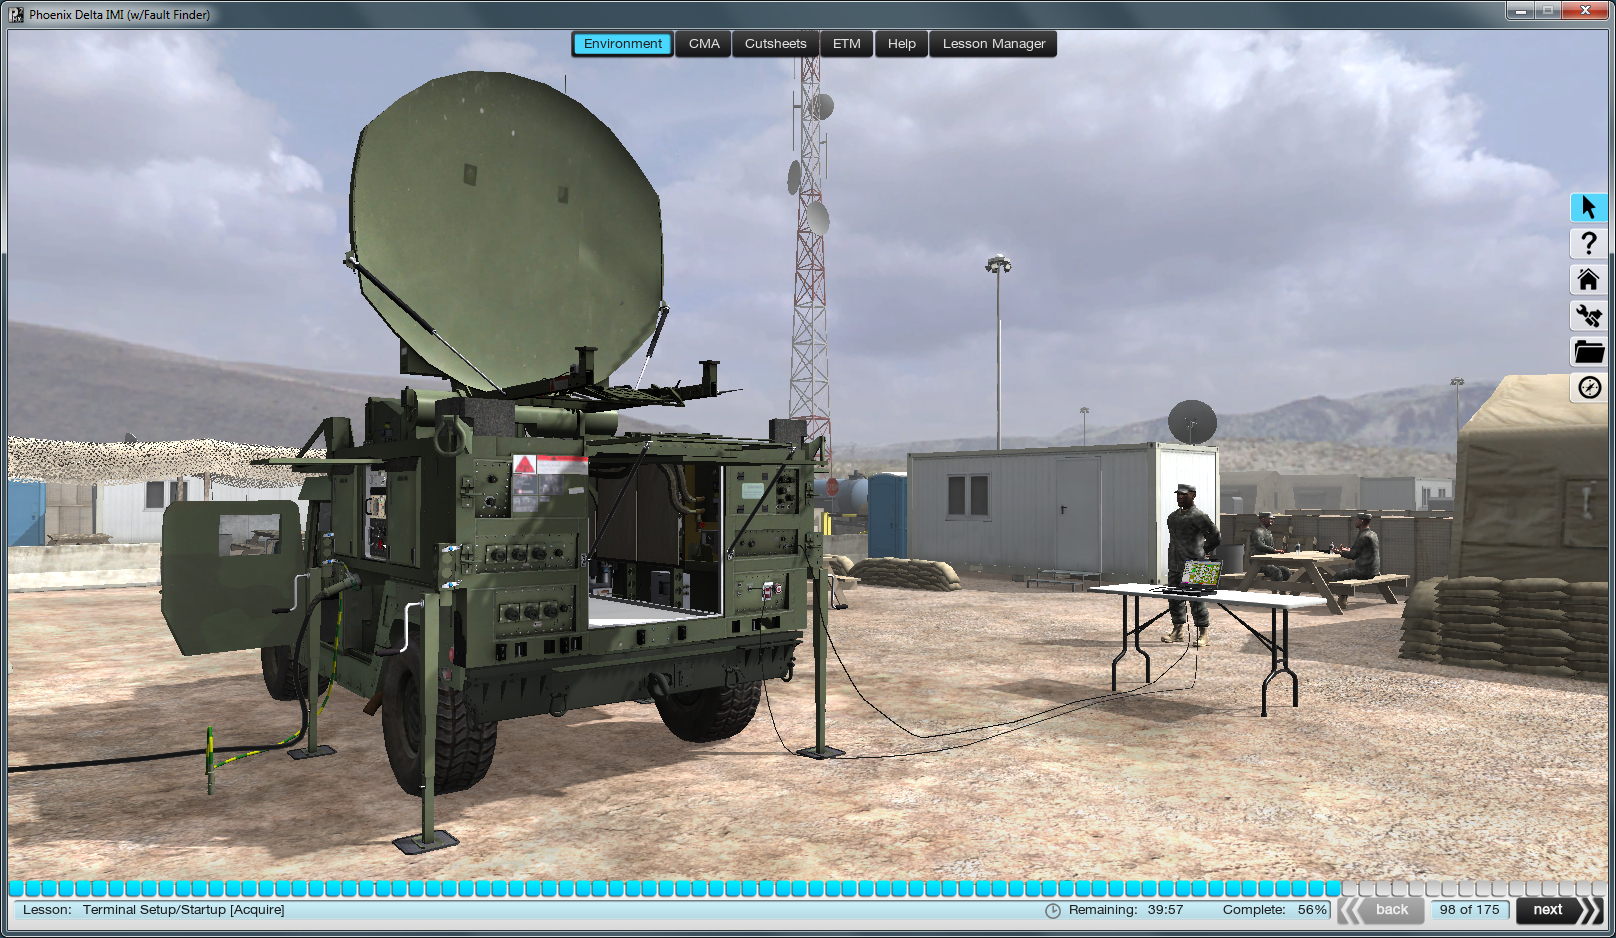 Army Satellite Communications Terminals Support An Agile